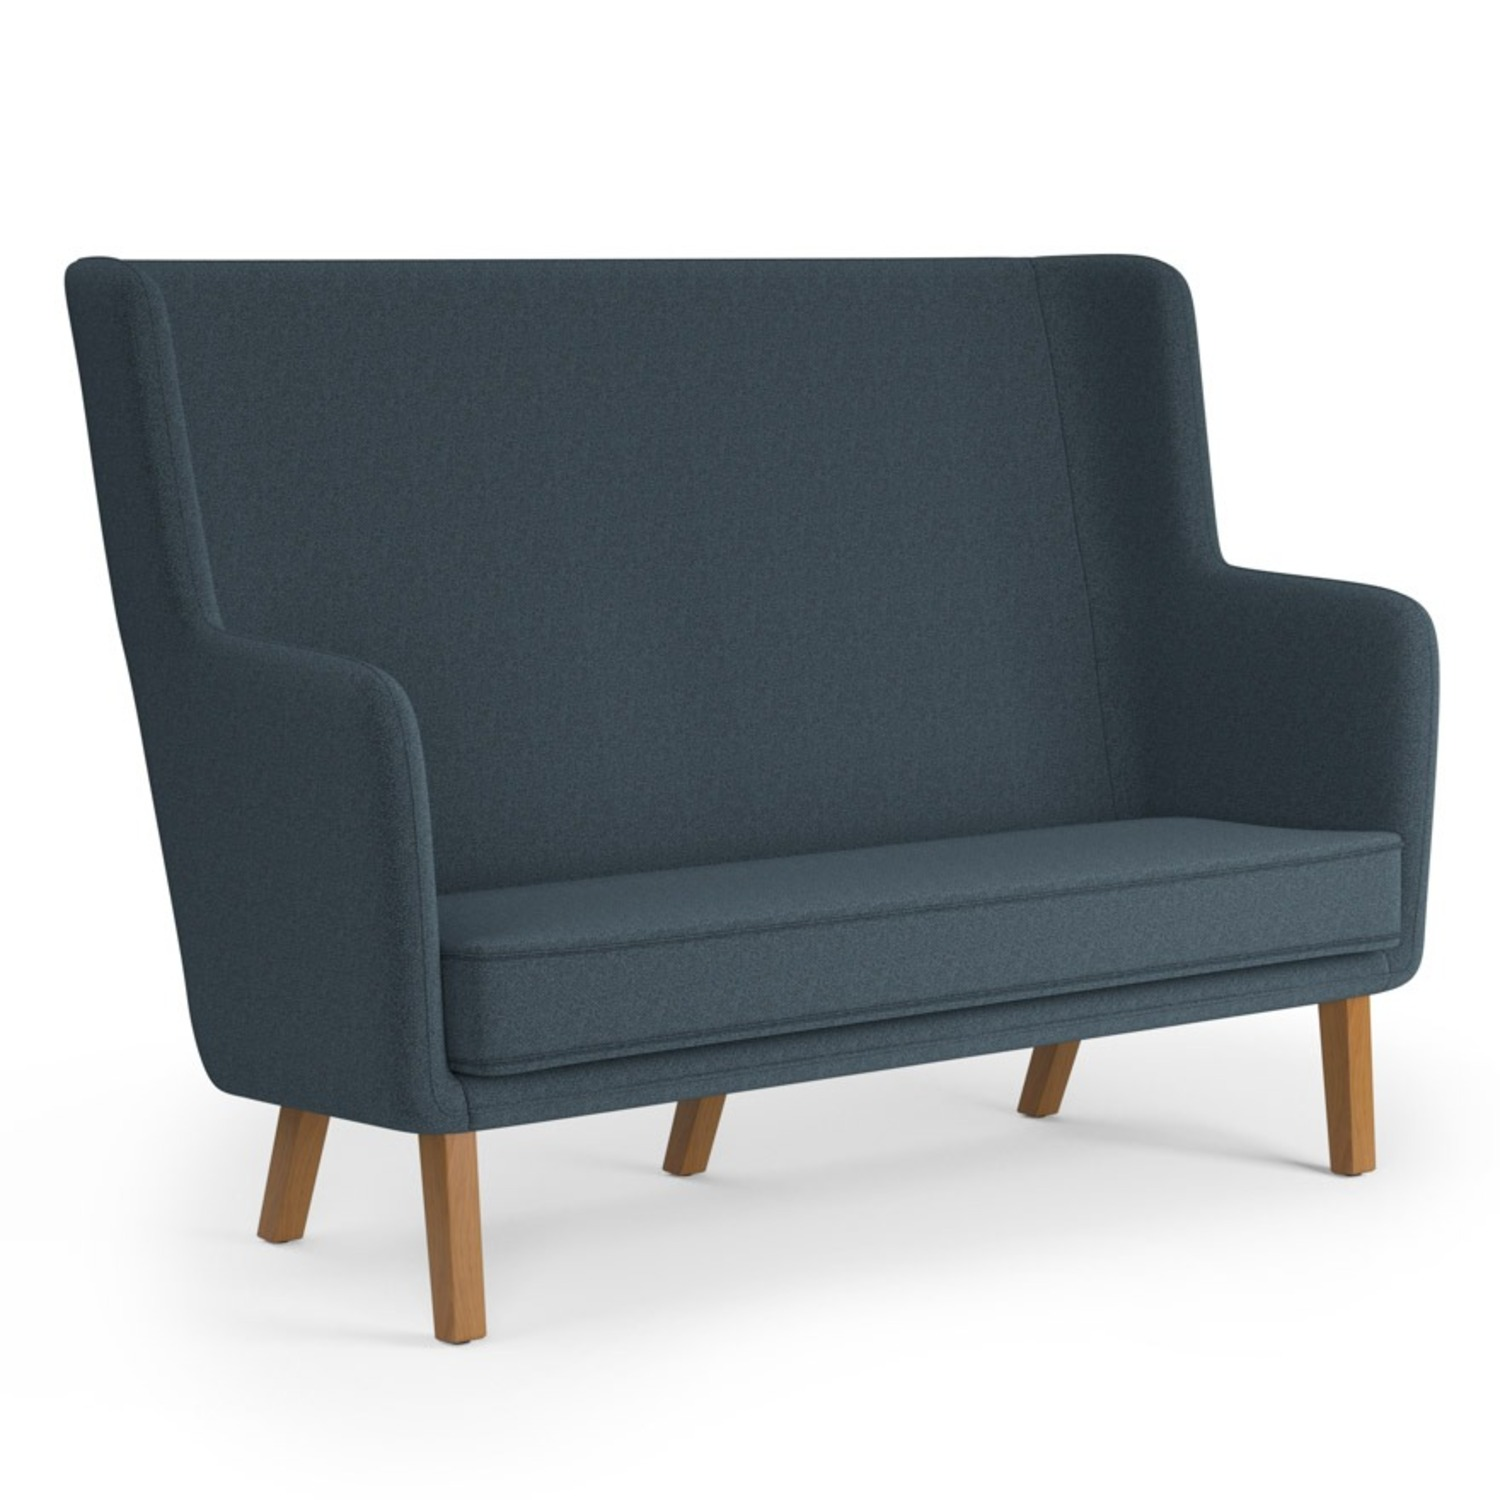 Knoll Rockwell Unscripted High Back Settee - image-1